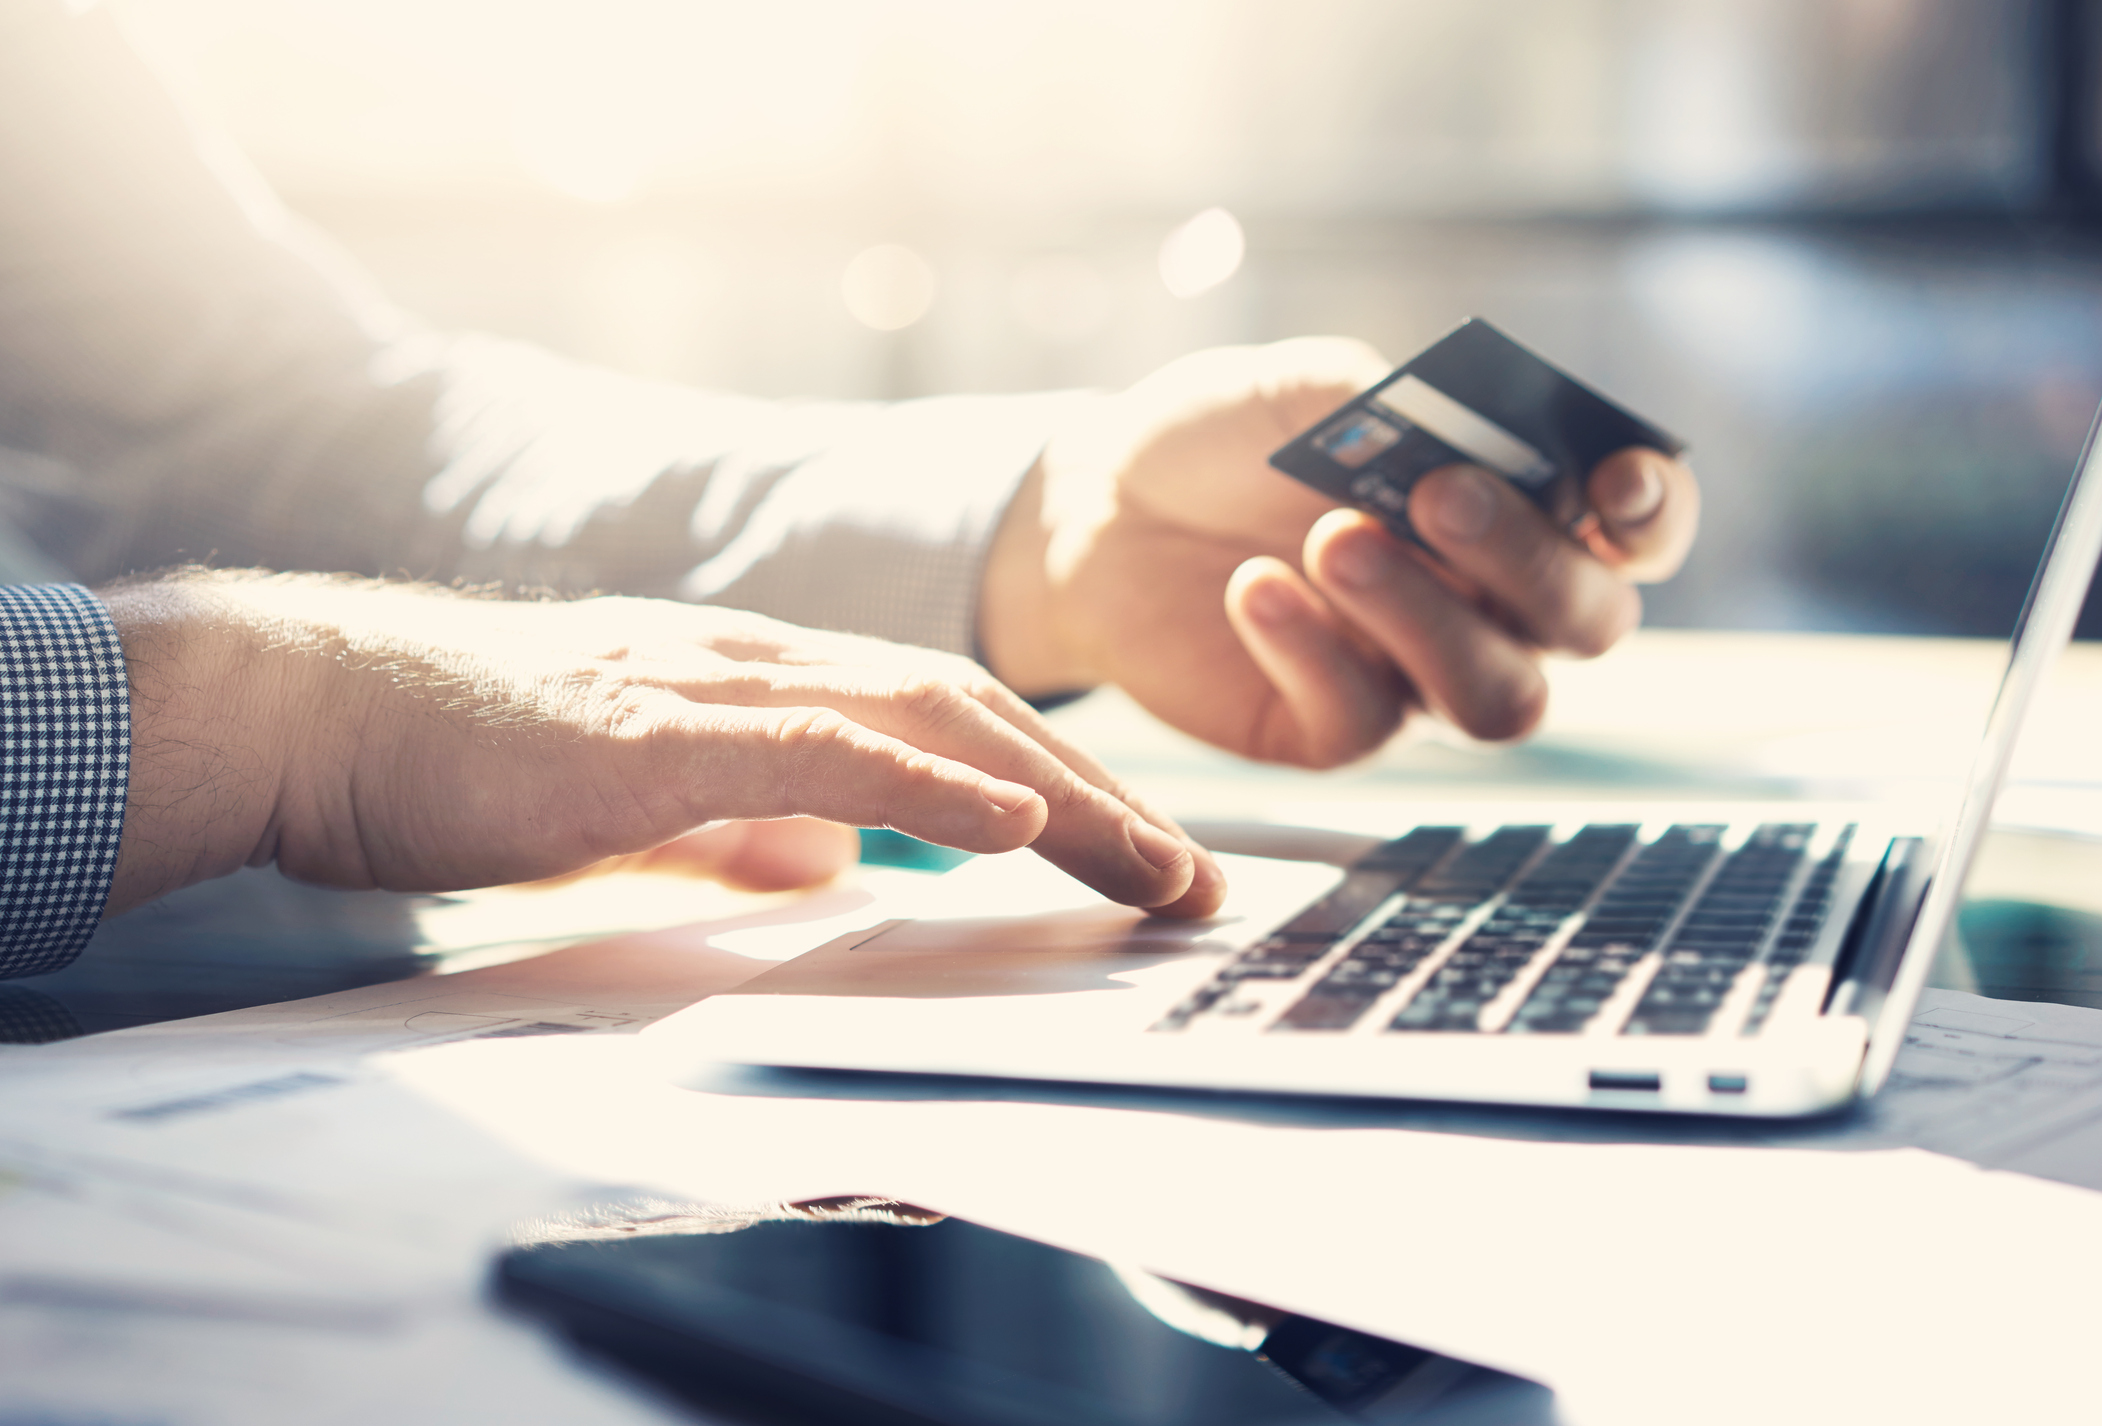 E-Commerce - If you want your business to have an online presence, or already have that established we can custom tailor solutions for you which will integrate with all major shopping carts and payment engines.